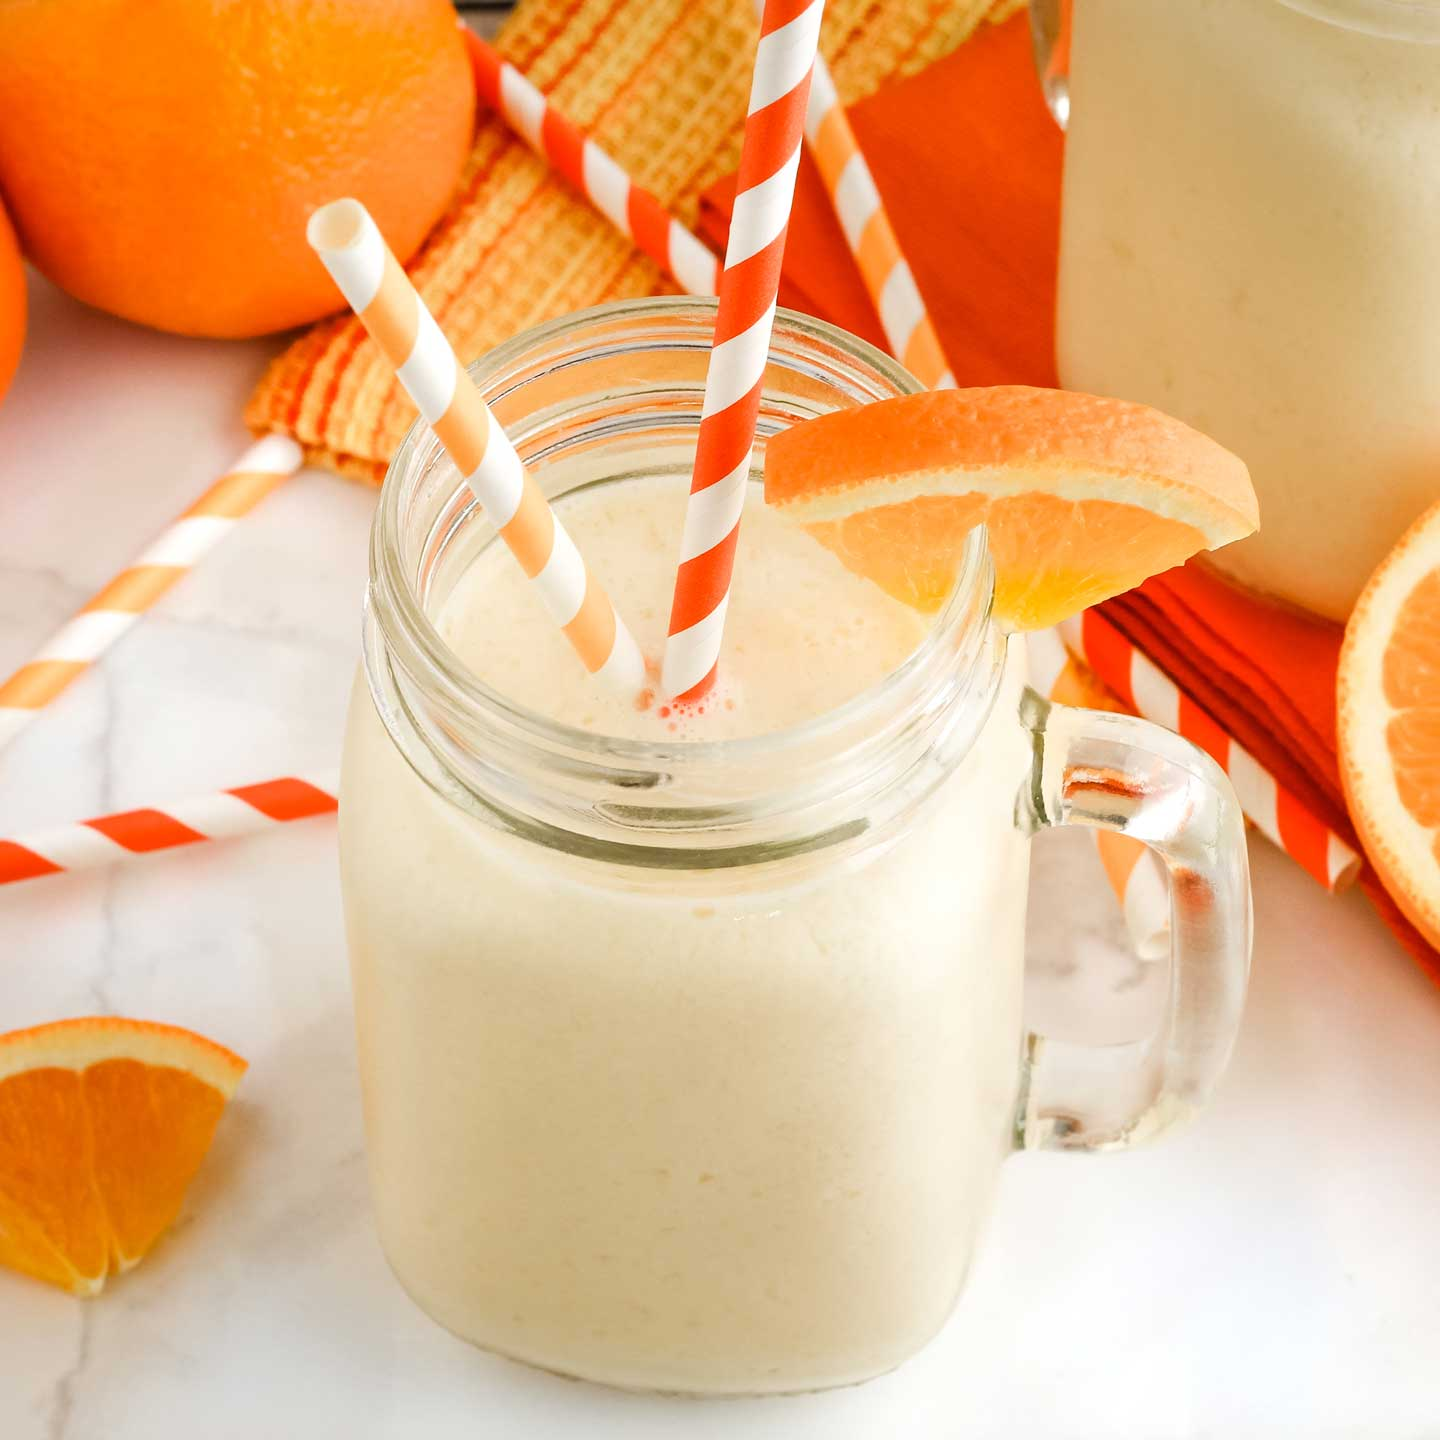 Side view of smoothie in a glass, with a sceond visible behind it, surrounded by oranges and striped straws.